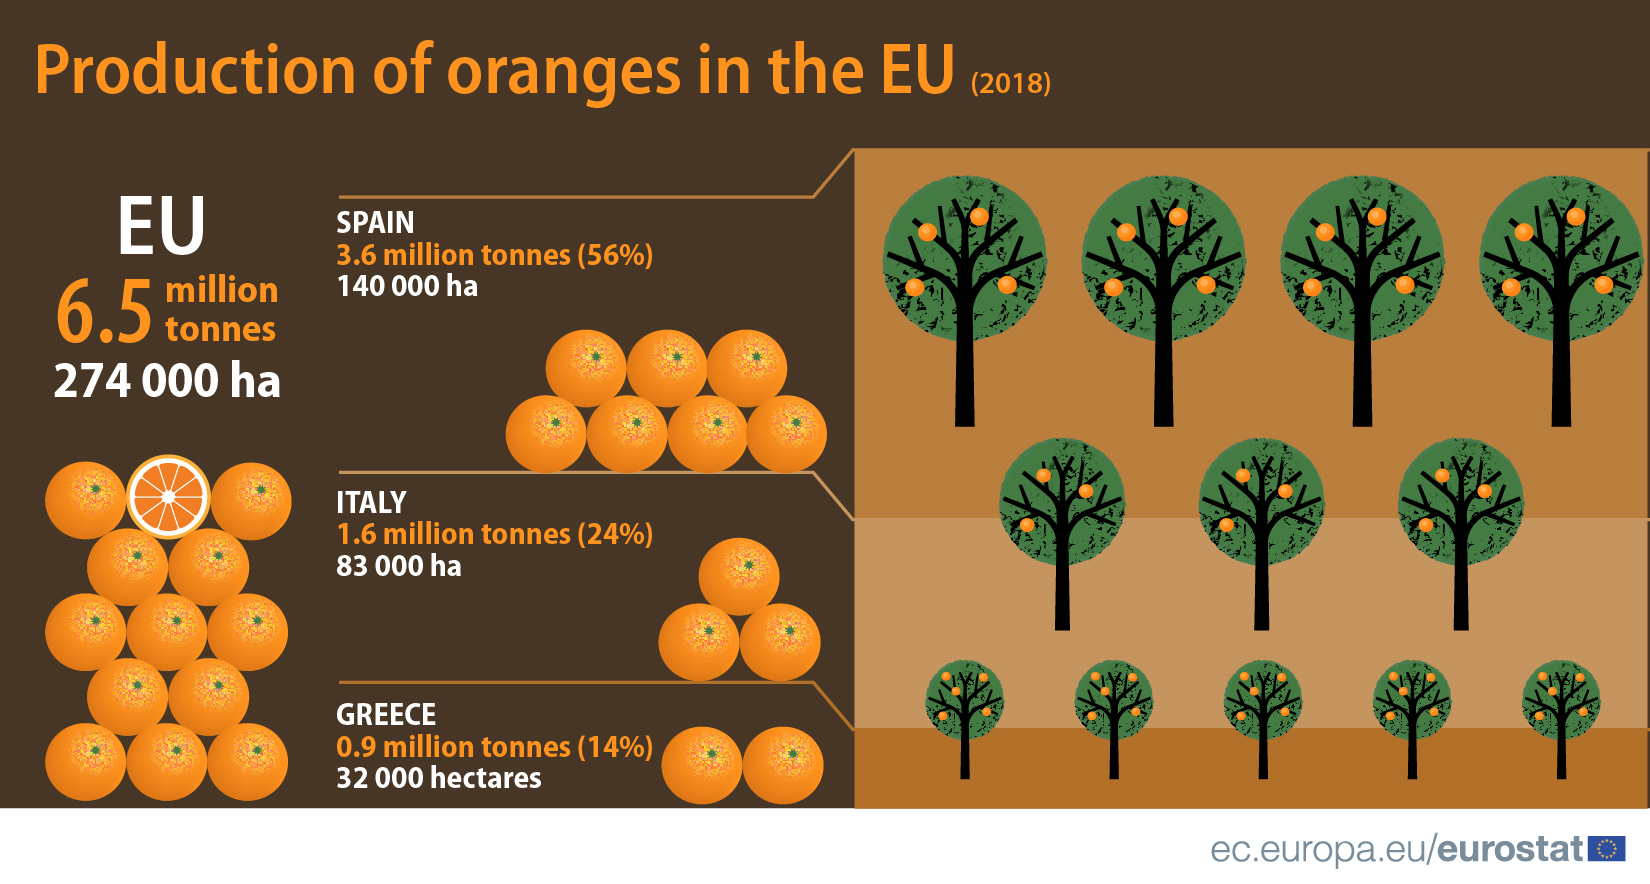 Production of oranges in the EU 2017